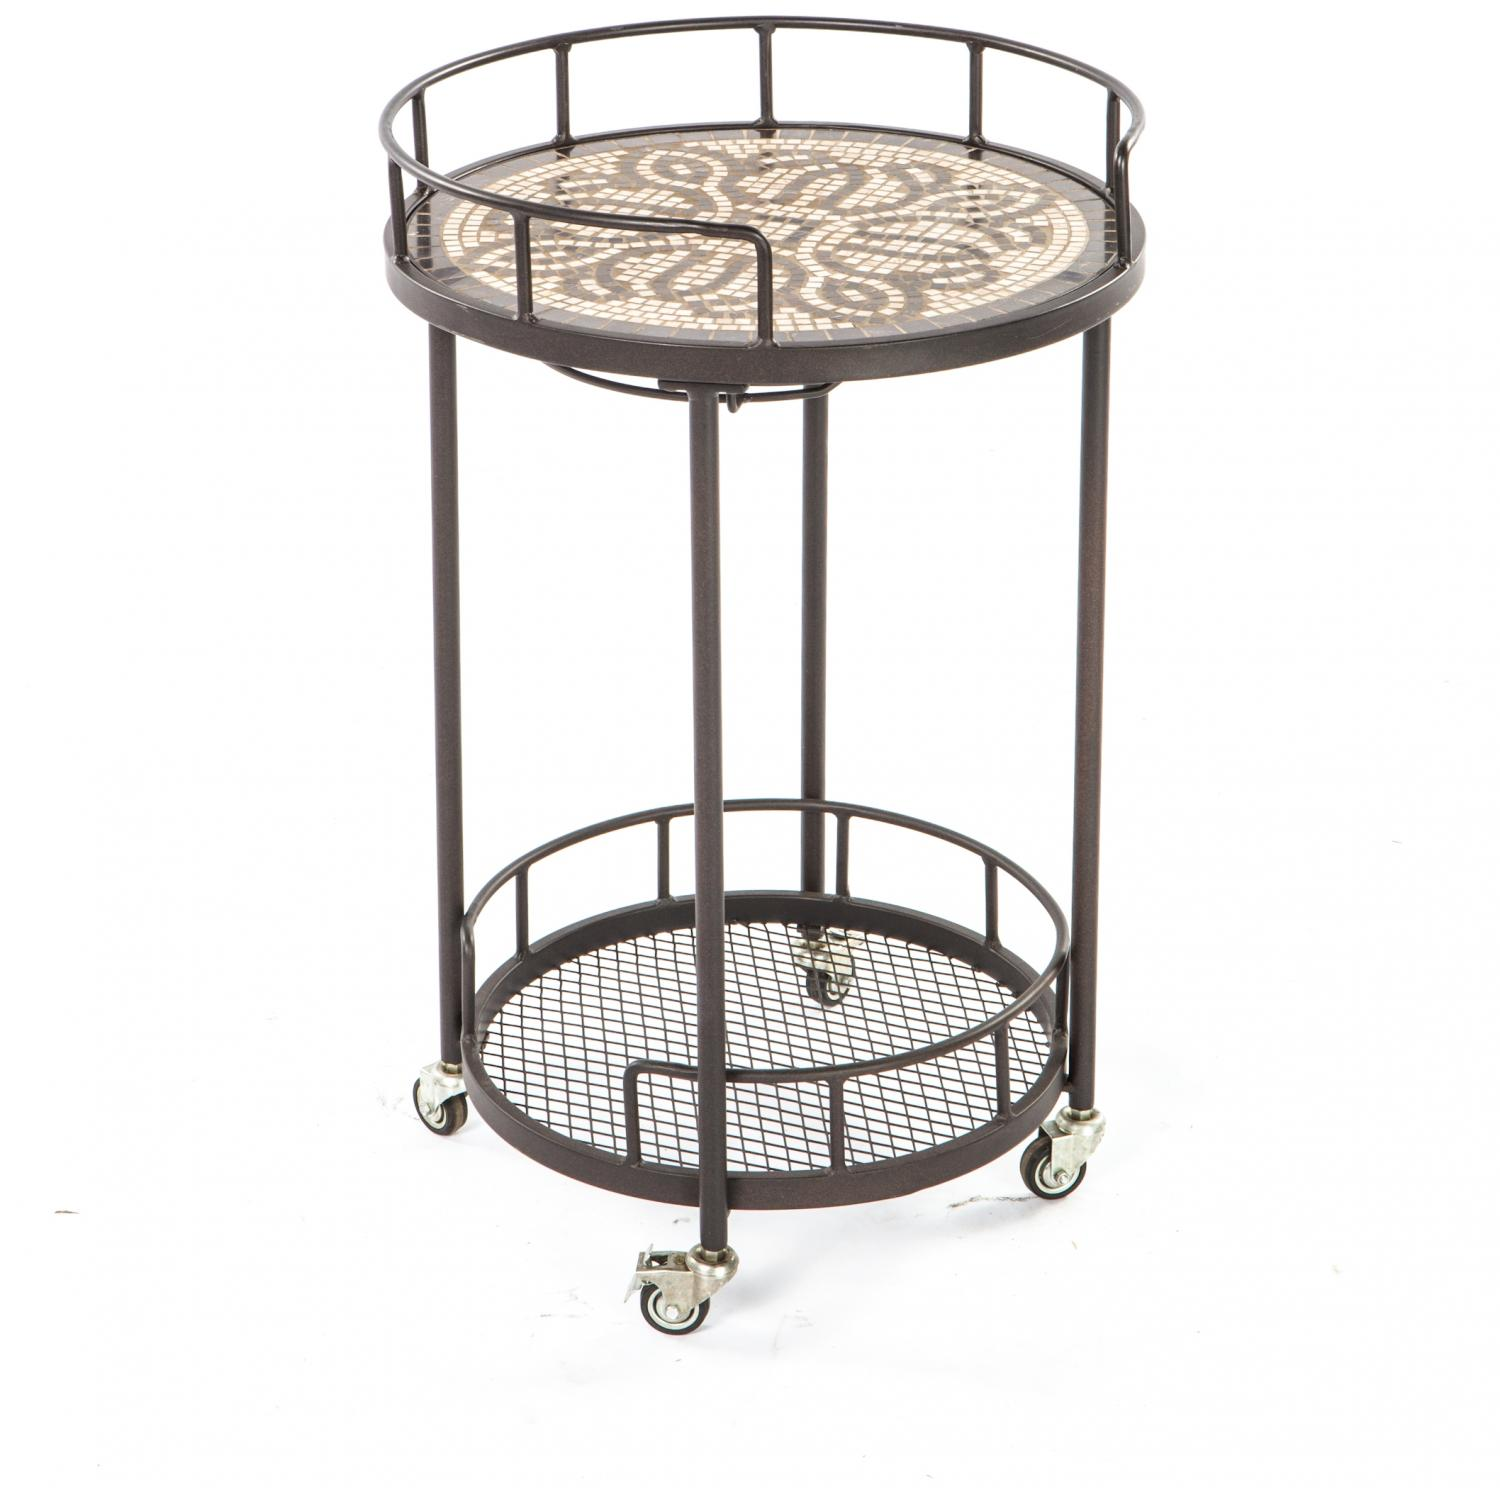 Alfresco Home Orvieto Mosaic Outdoor Serving Cart at Sears.com